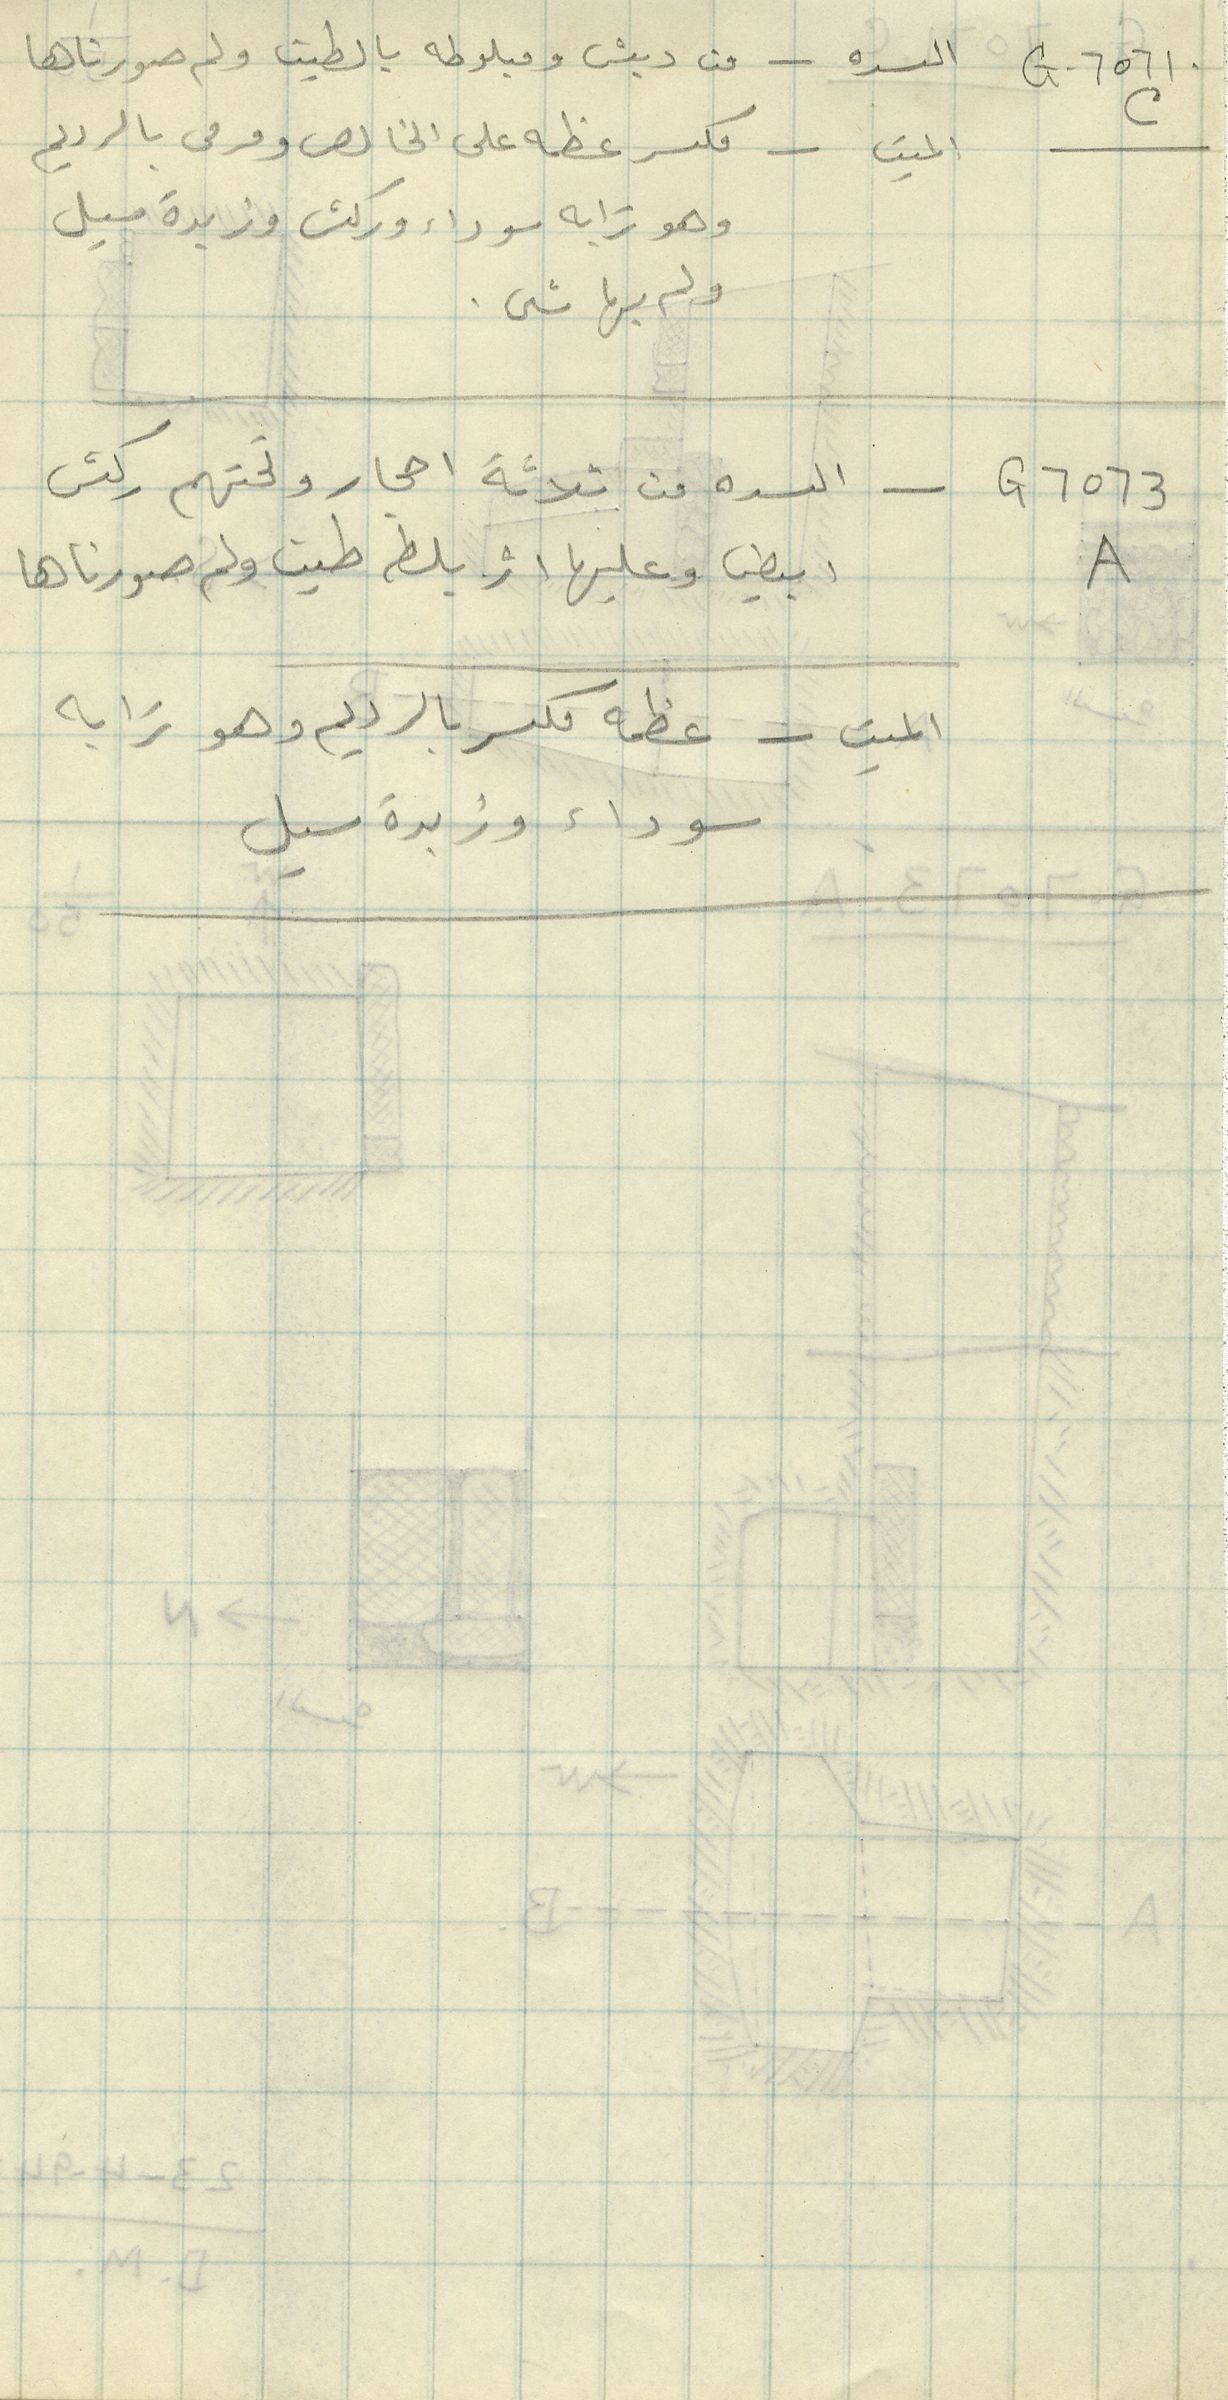 Notes: G 7071, Shaft C, notes (in Arabic) & G 7073, Shaft A, notes (in Arabic)